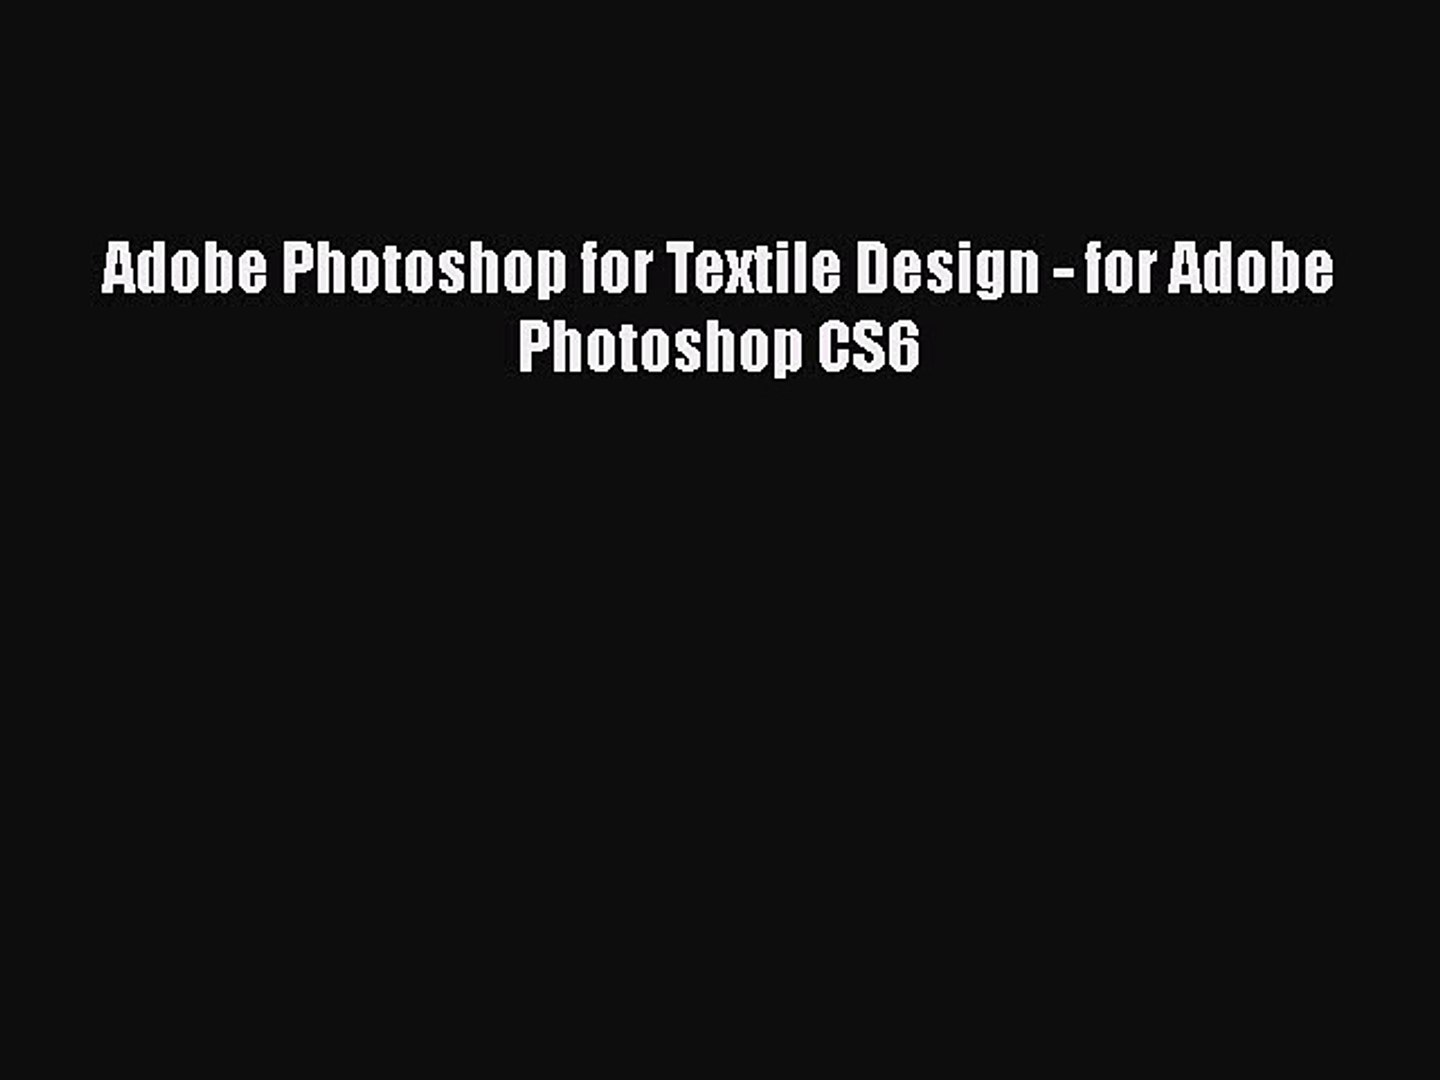 [Read Book] Adobe Photoshop for Textile Design - for Adobe Photoshop CS6  Free PDF - video dailymotion